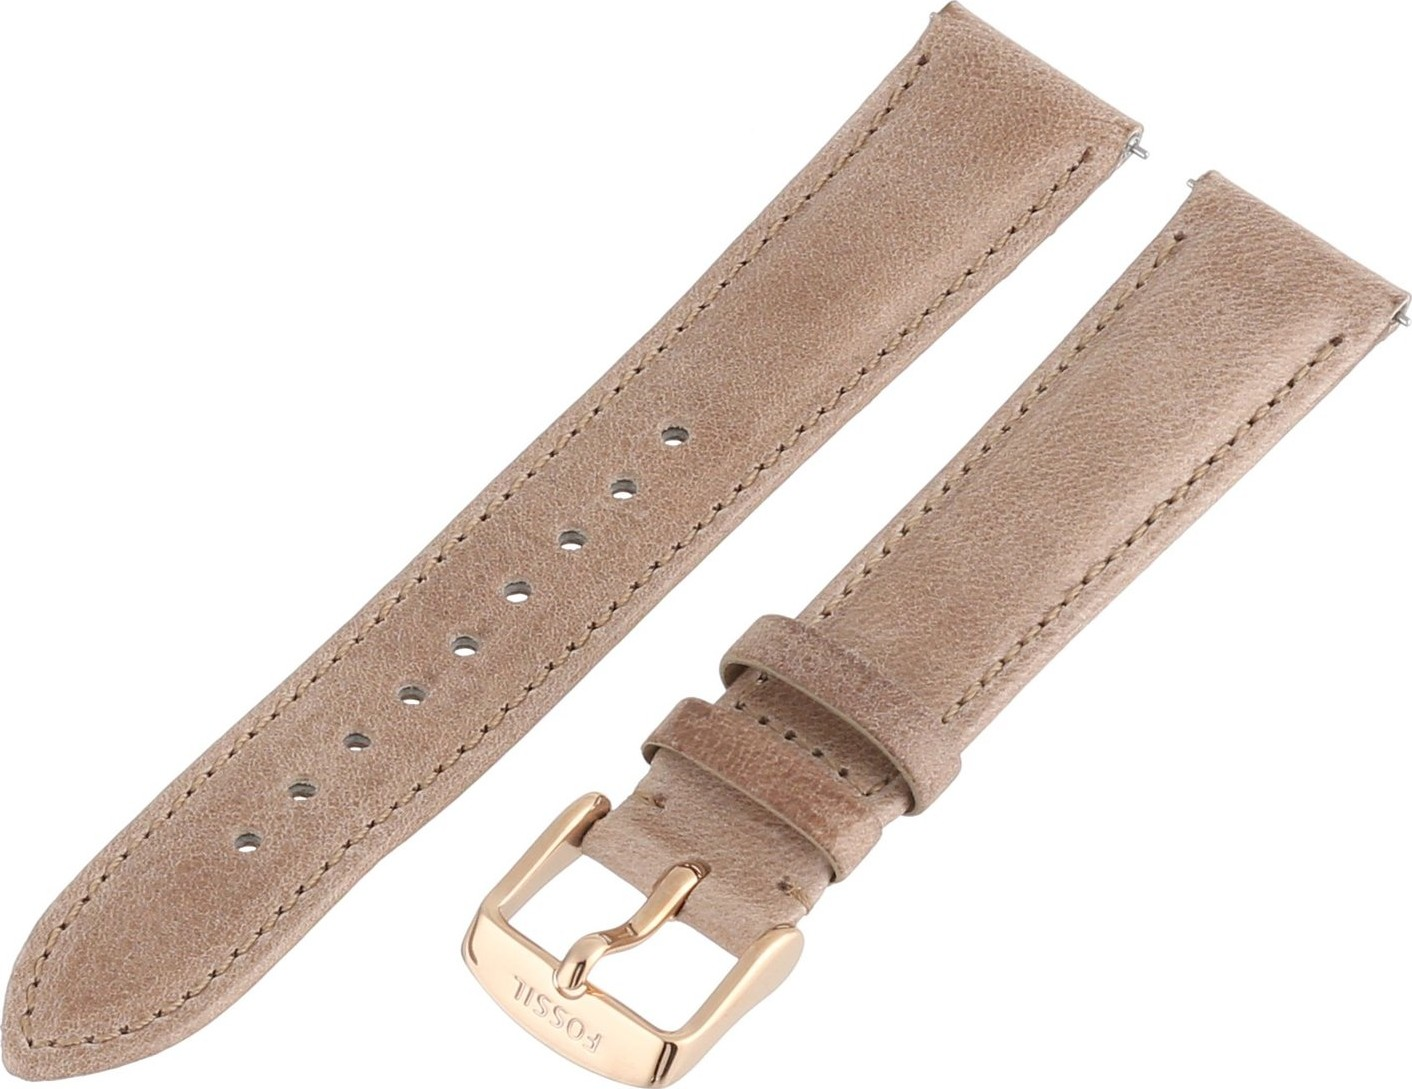 Fossil Women's Leather Watch Strap - Tan 18mm